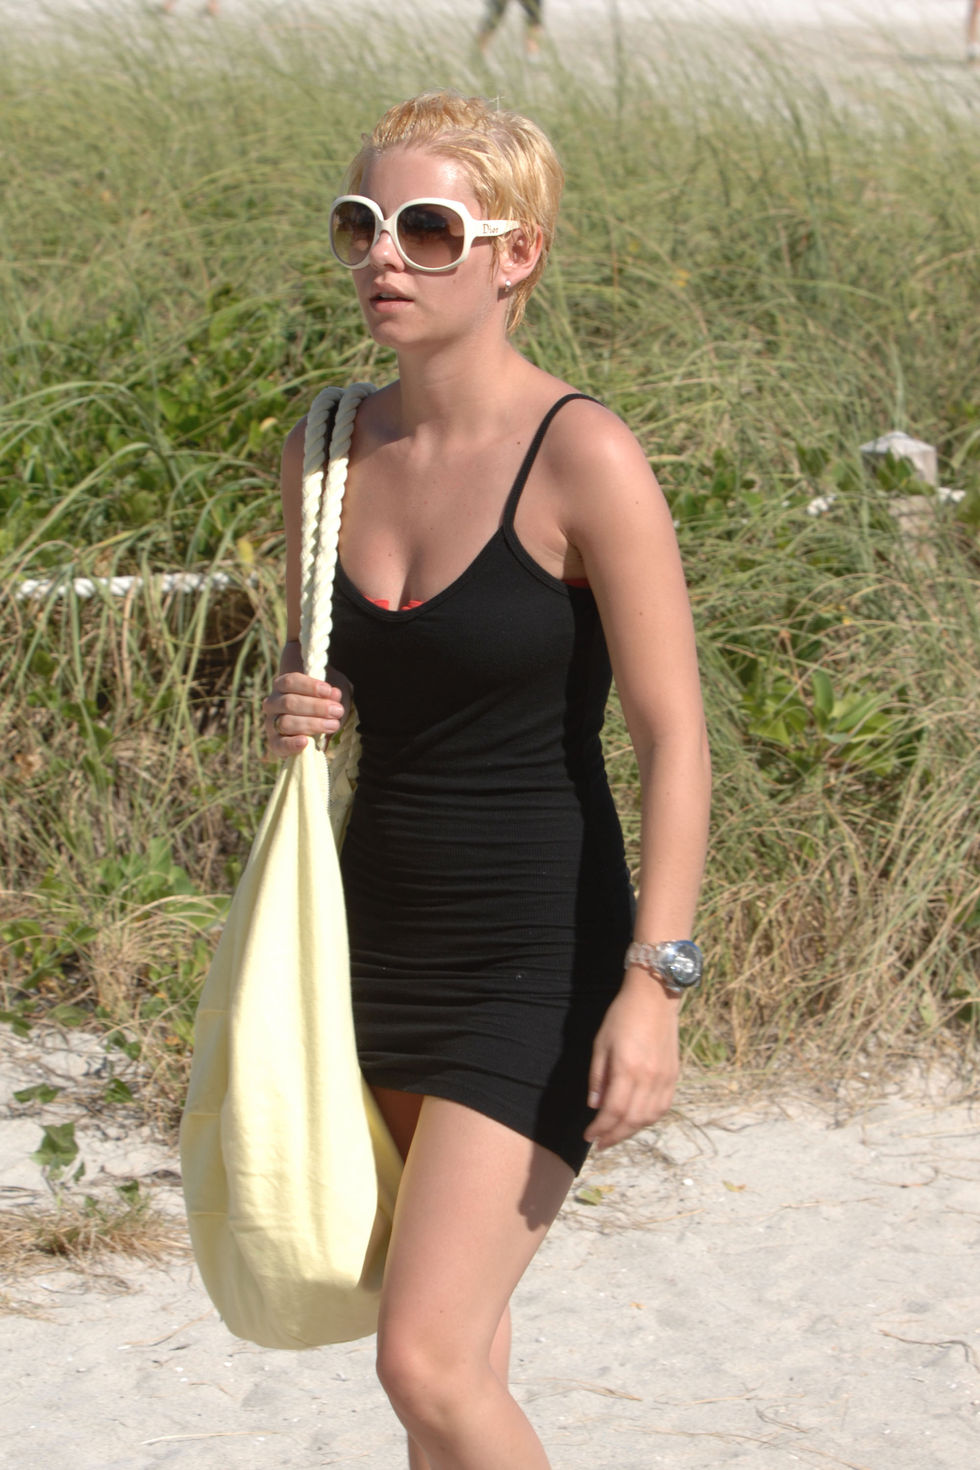 elisha-cuthbert-in-bikini-at-south-beach-in-miami-01